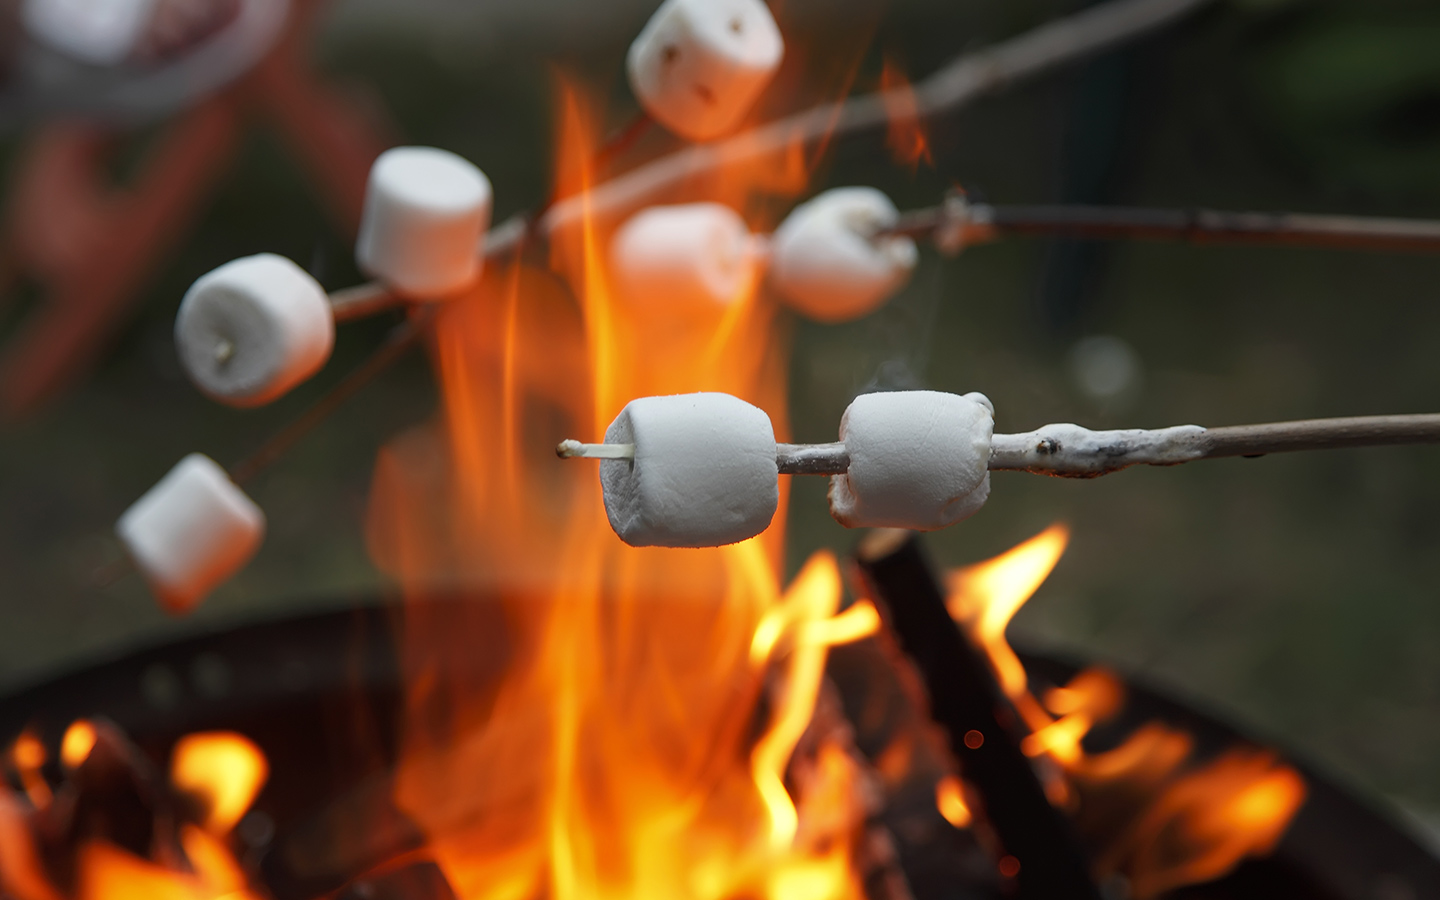 marshamallows cooked on a camp fire